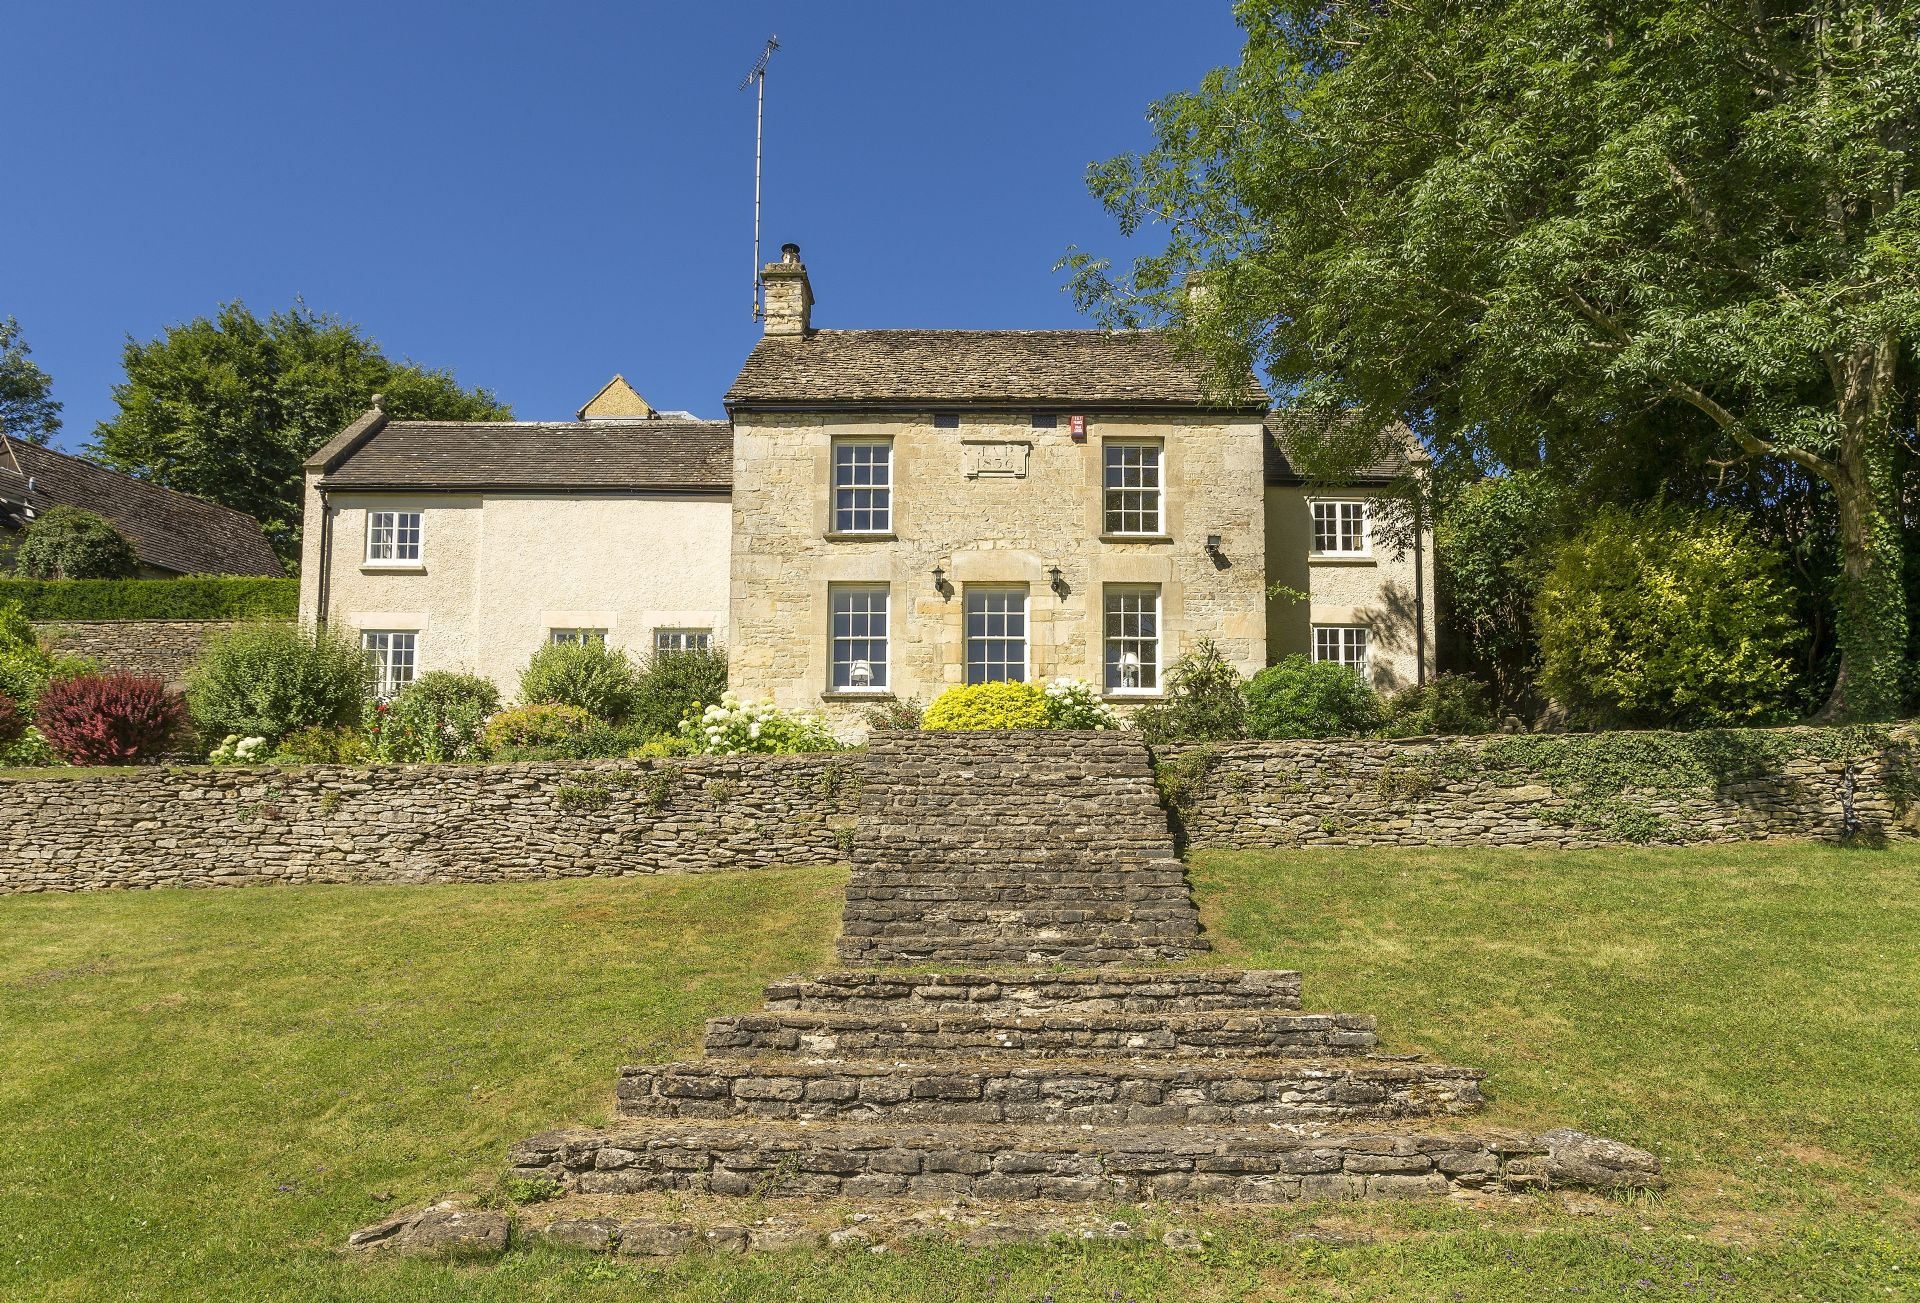 Catalpa Cottage is a detached 19th century Cotswold cottage set in a quiet corner of Tetbury yet only a three minute walk from the centre. It is set in an elevated position above a one acre private garden